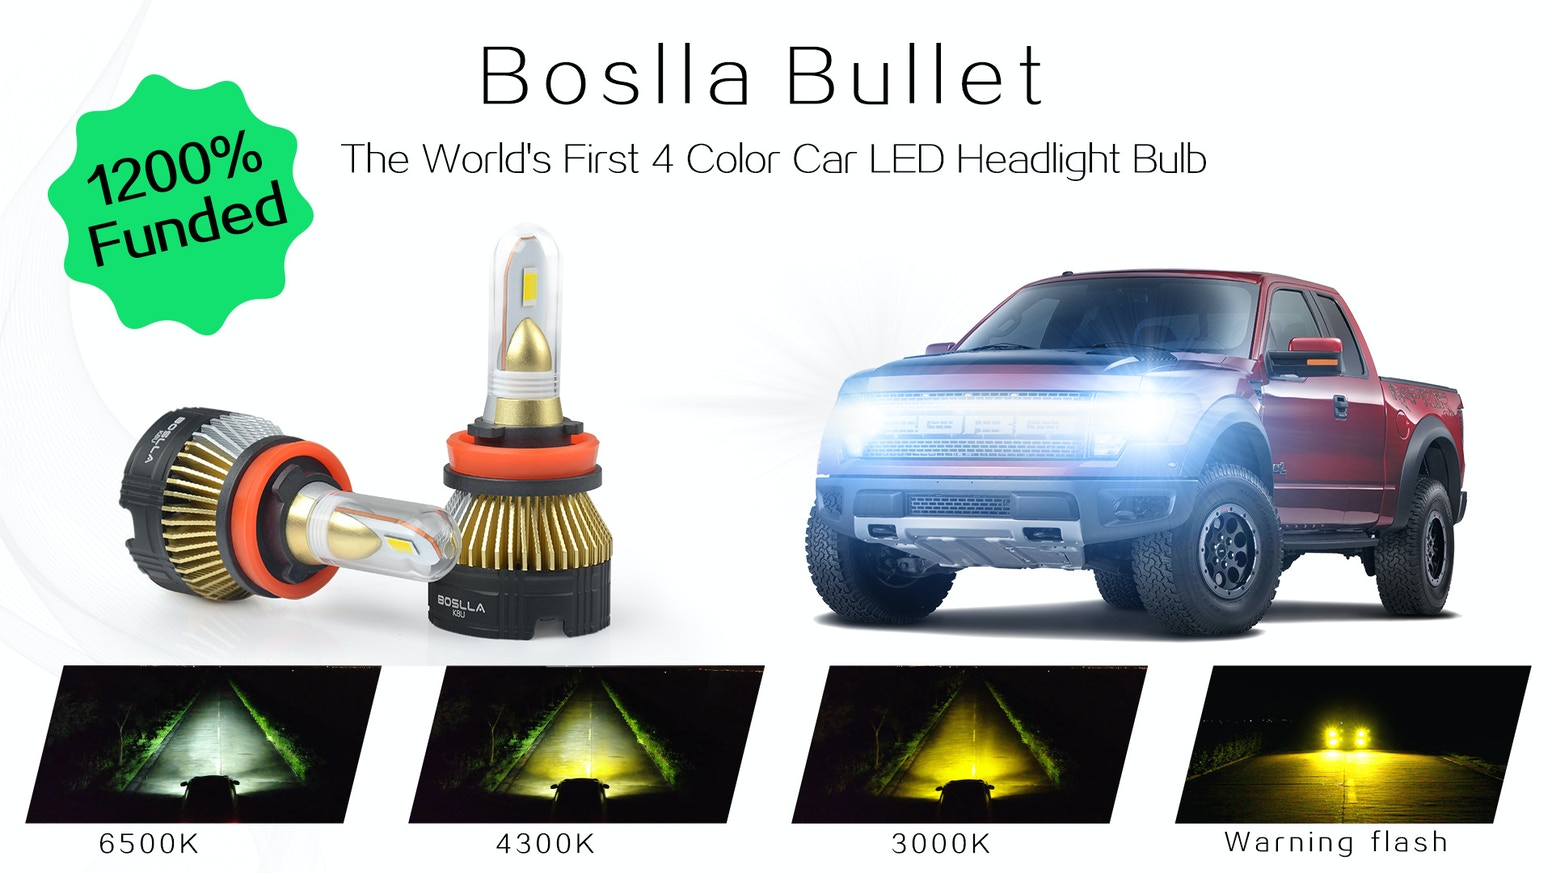 Boslla Bullet led headlight bulb works perfectly in sunny, snowy, rainy, foggy weather and even emergency situations